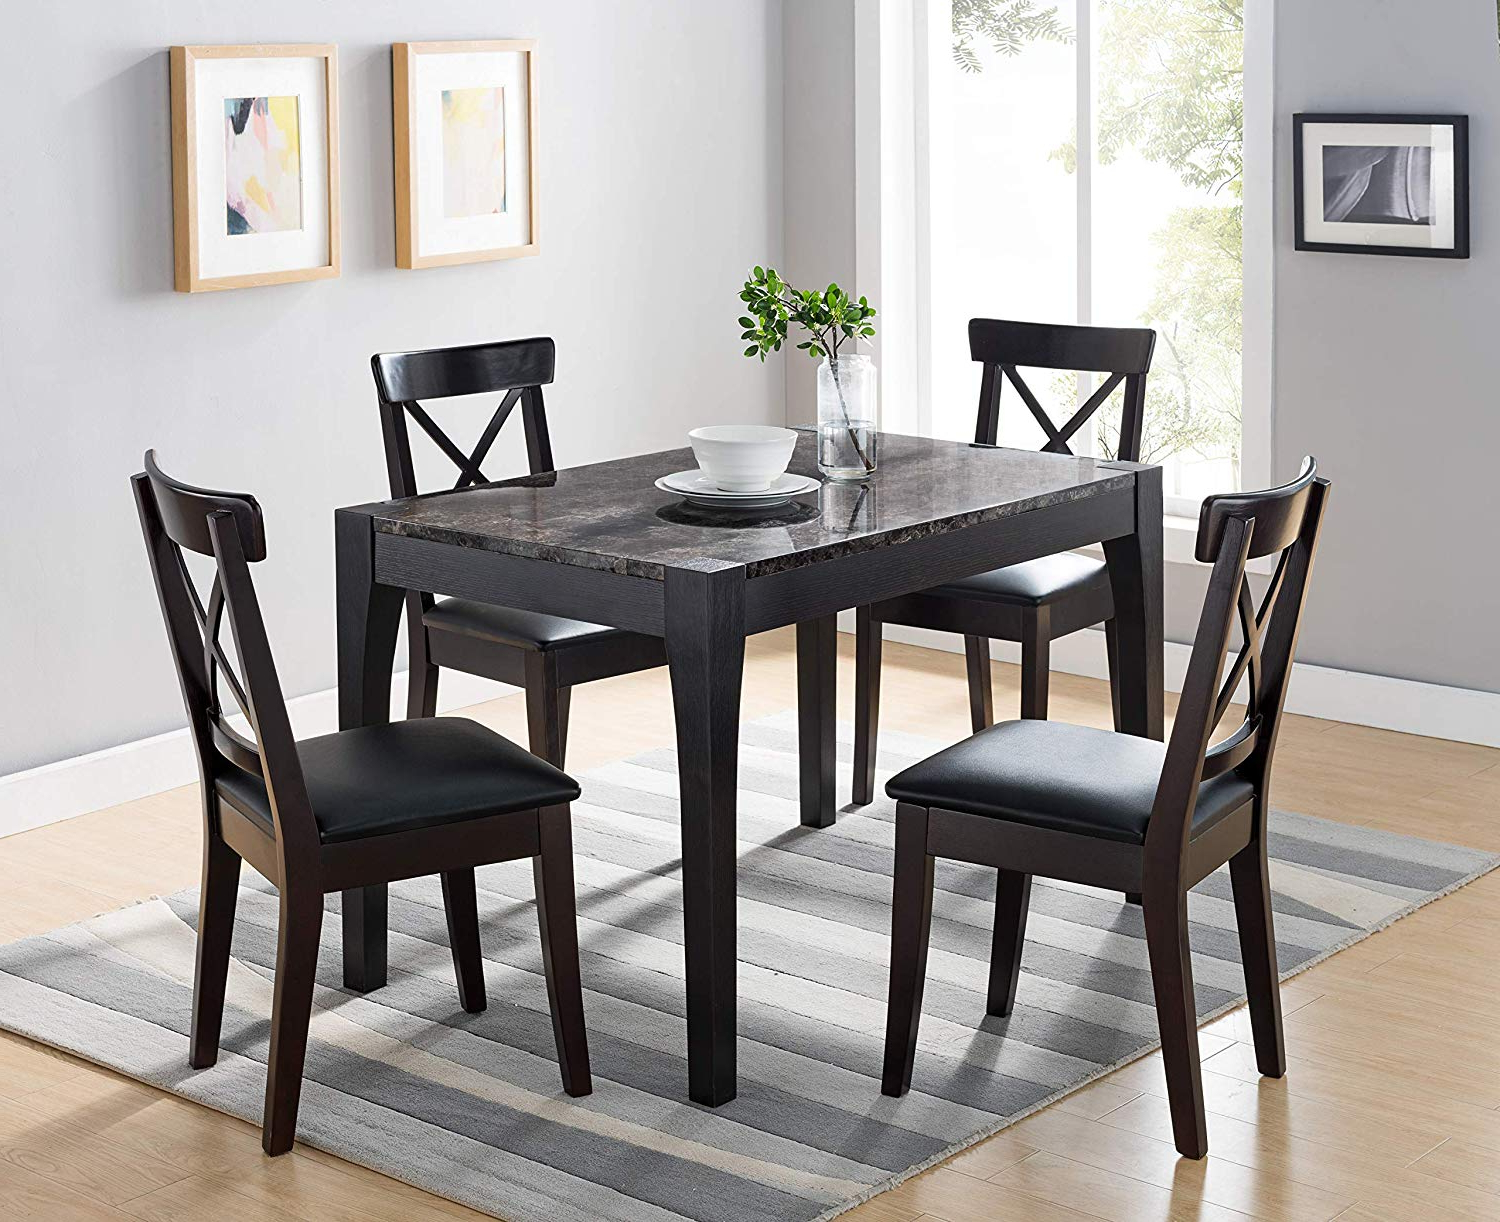 Newest Faux Marble Finish Metal Contemporary Dining Tables regarding Amazon - 161799 Dining Room Table (Black And Faux Black